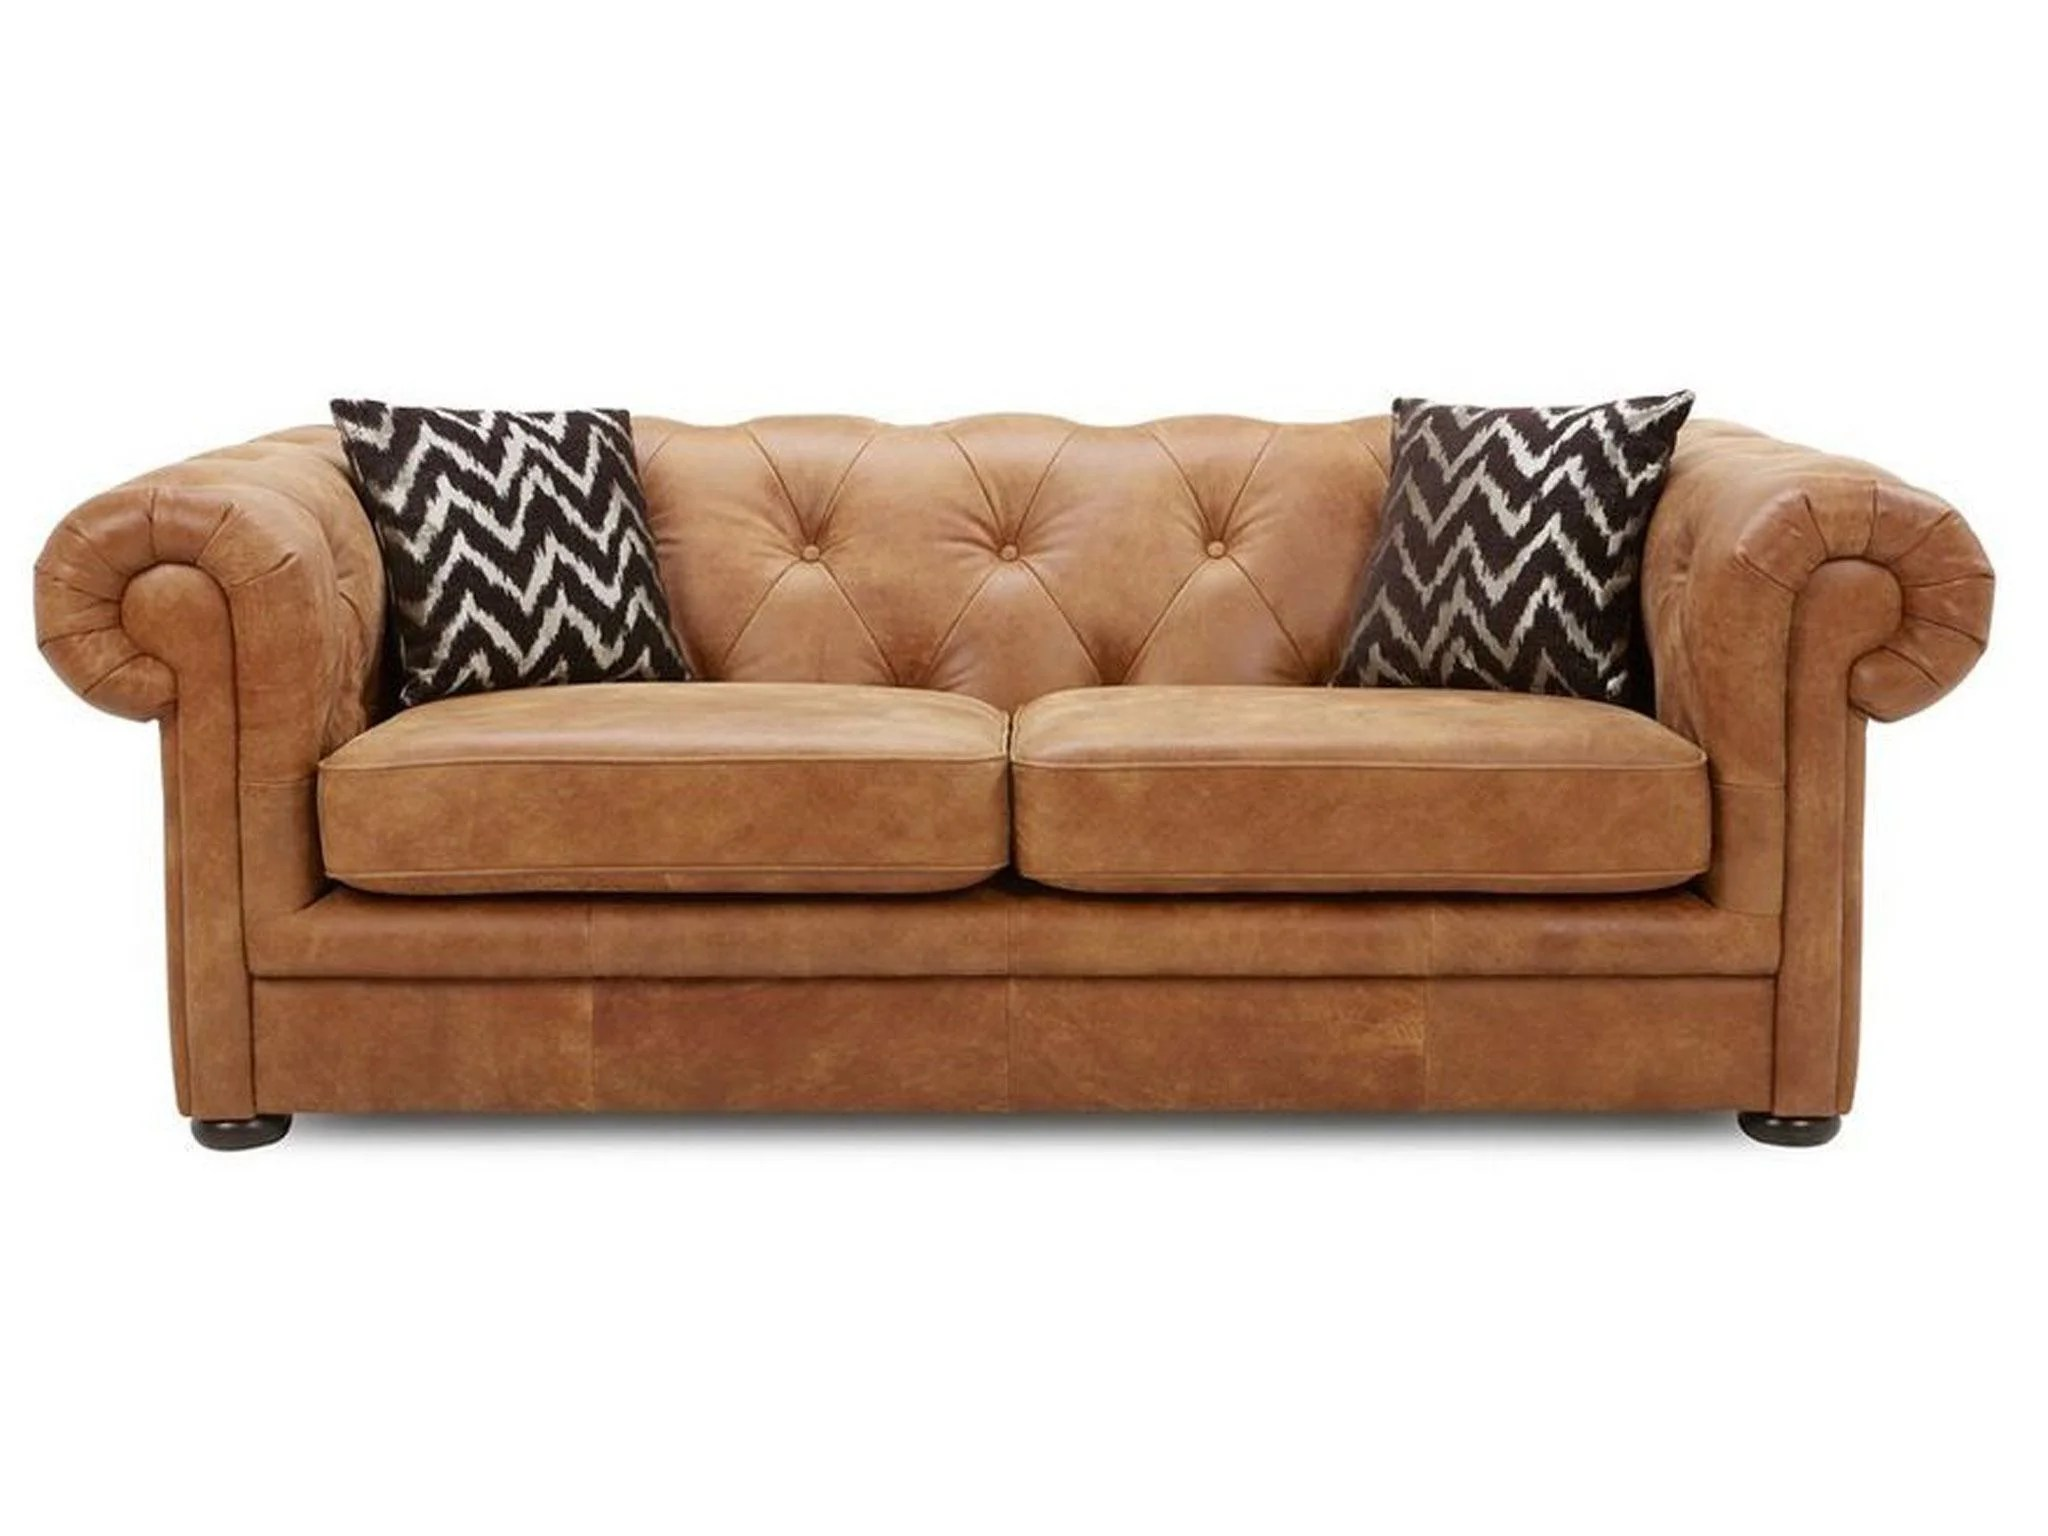 reupholster sofa south london inflatable outdoor air sleep couch portable furniture 10 best sofas the independent this three seater has traditional british style and plump foam filled seat cushions that are perfect for sinking into finish is 100 per cent